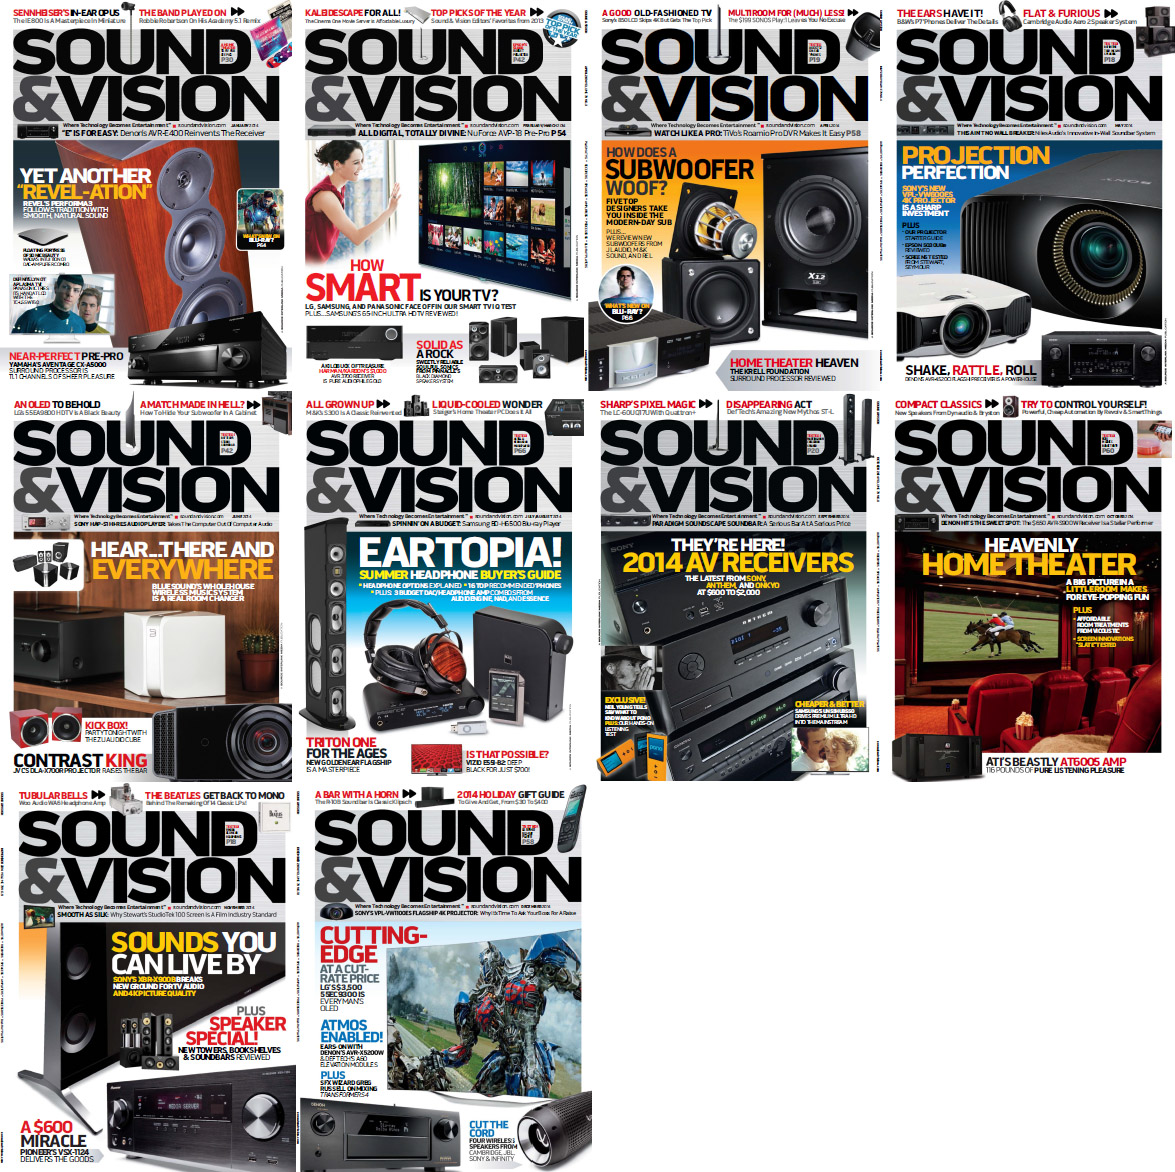 Sound & Vision Magazine - Full Year 2014 Issues Collection free download